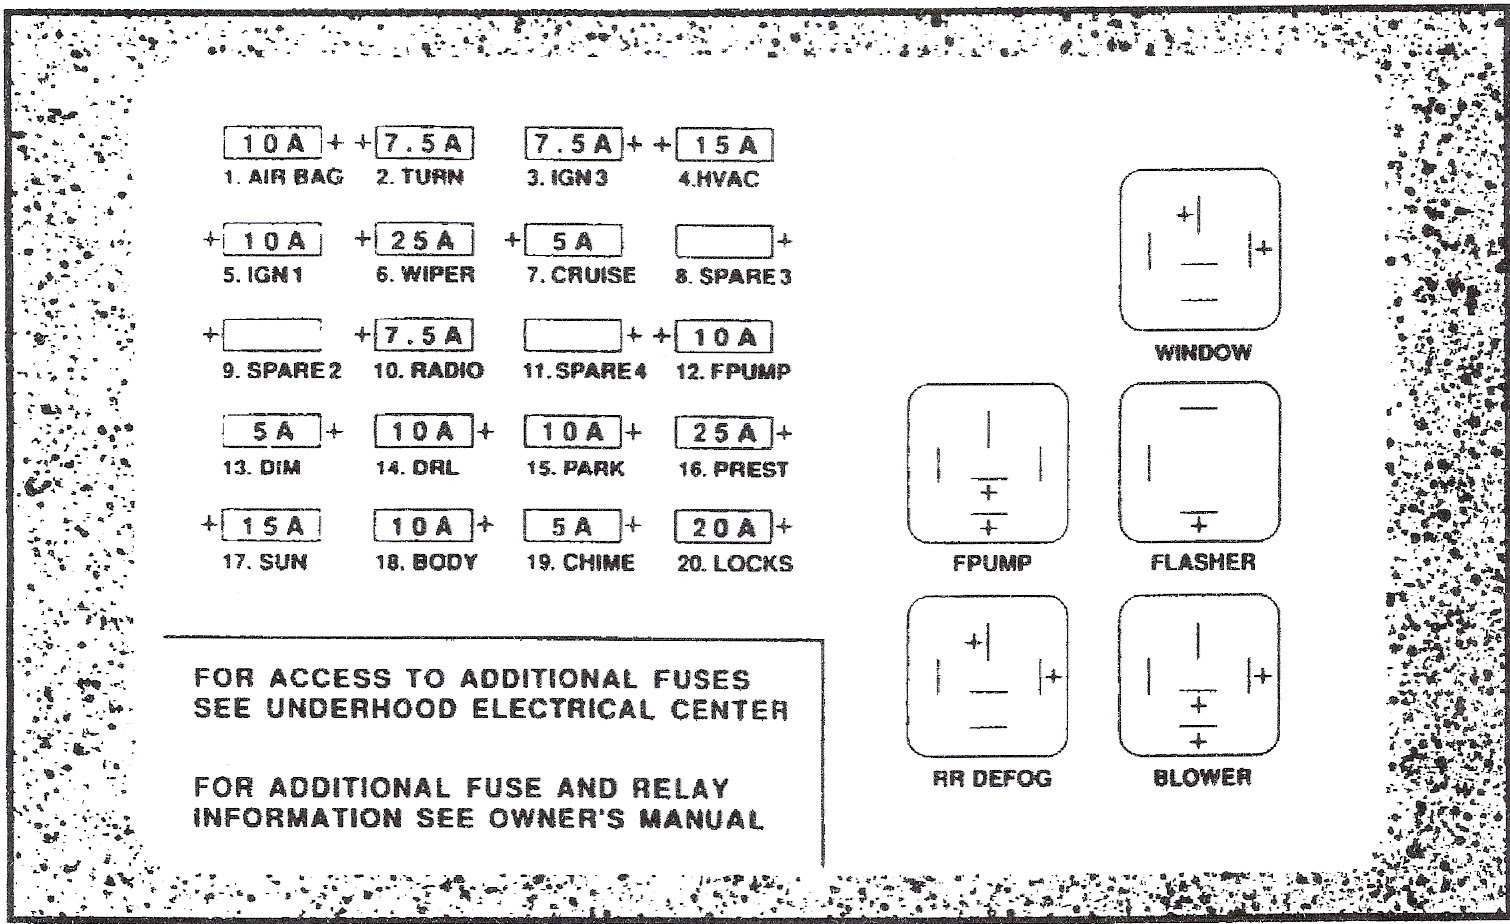 1999 Saturn Sl1 Fuse Box Diagram Motor Engine Diagram Jeep Wrangler Yenpancane Jeanjaures37 Fr